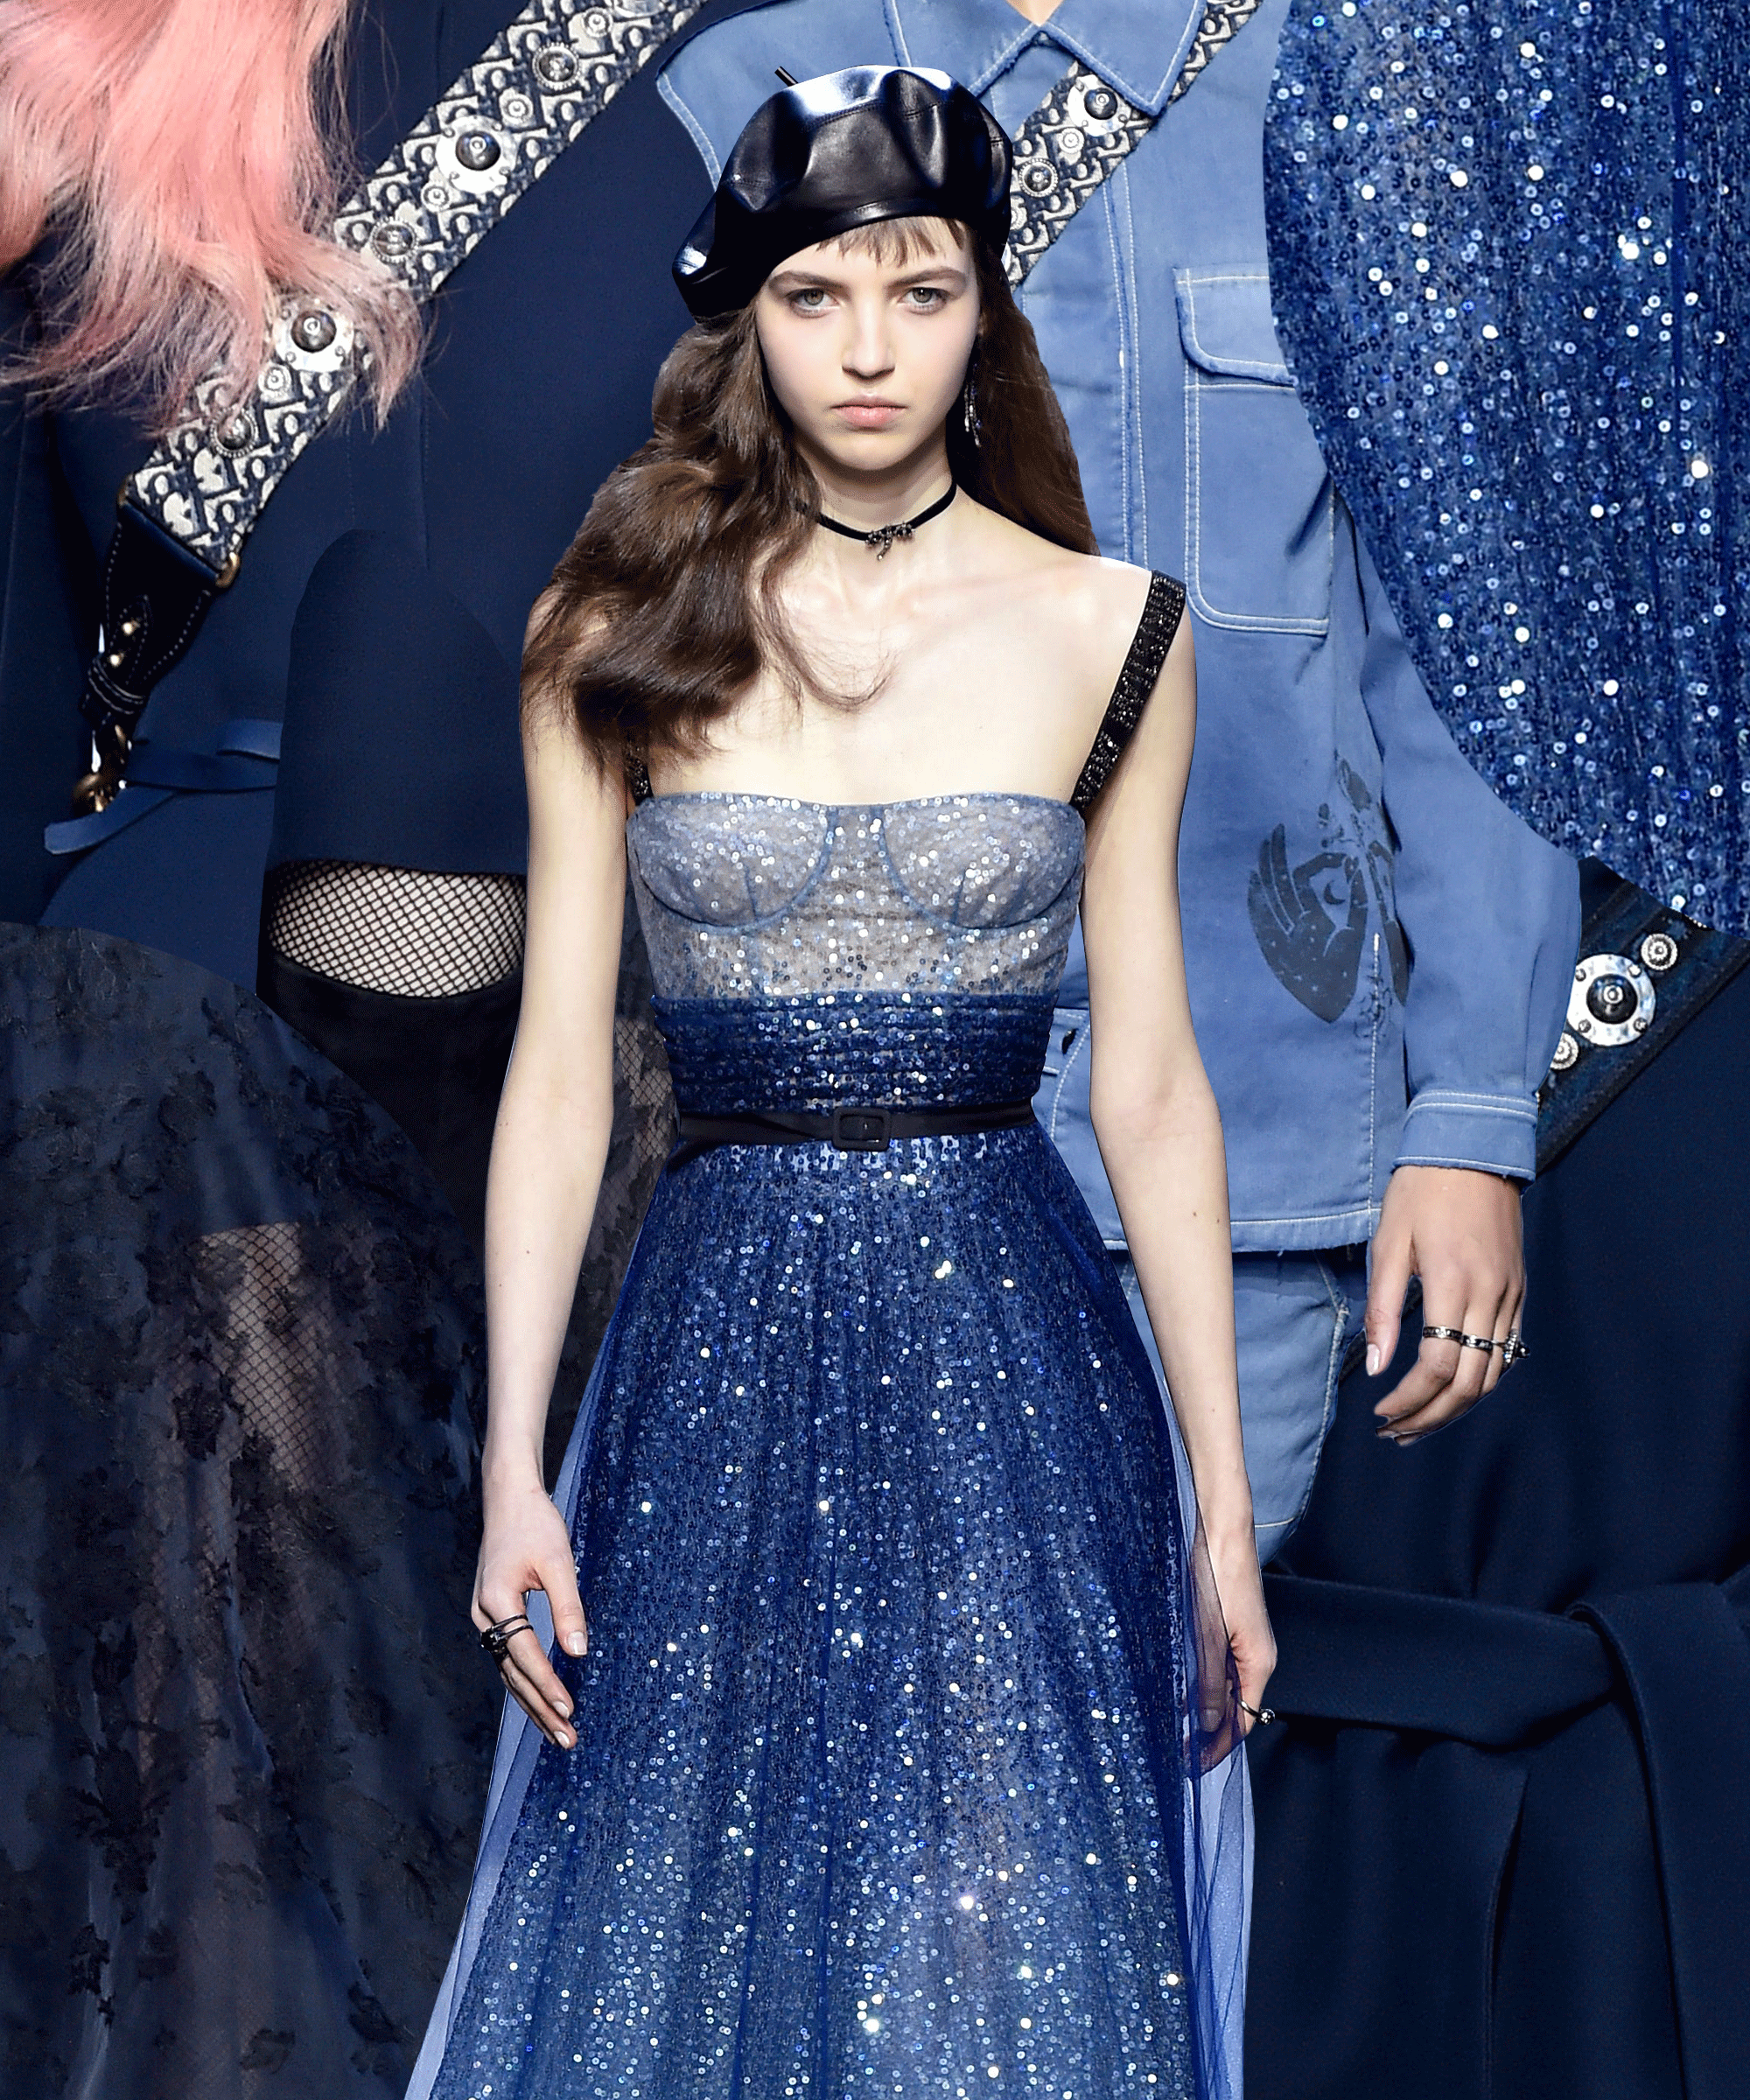 Maria Grazia Chiuri Experiments With Navy Blue for Her Dior FallWinter 2019-18 RTW Line